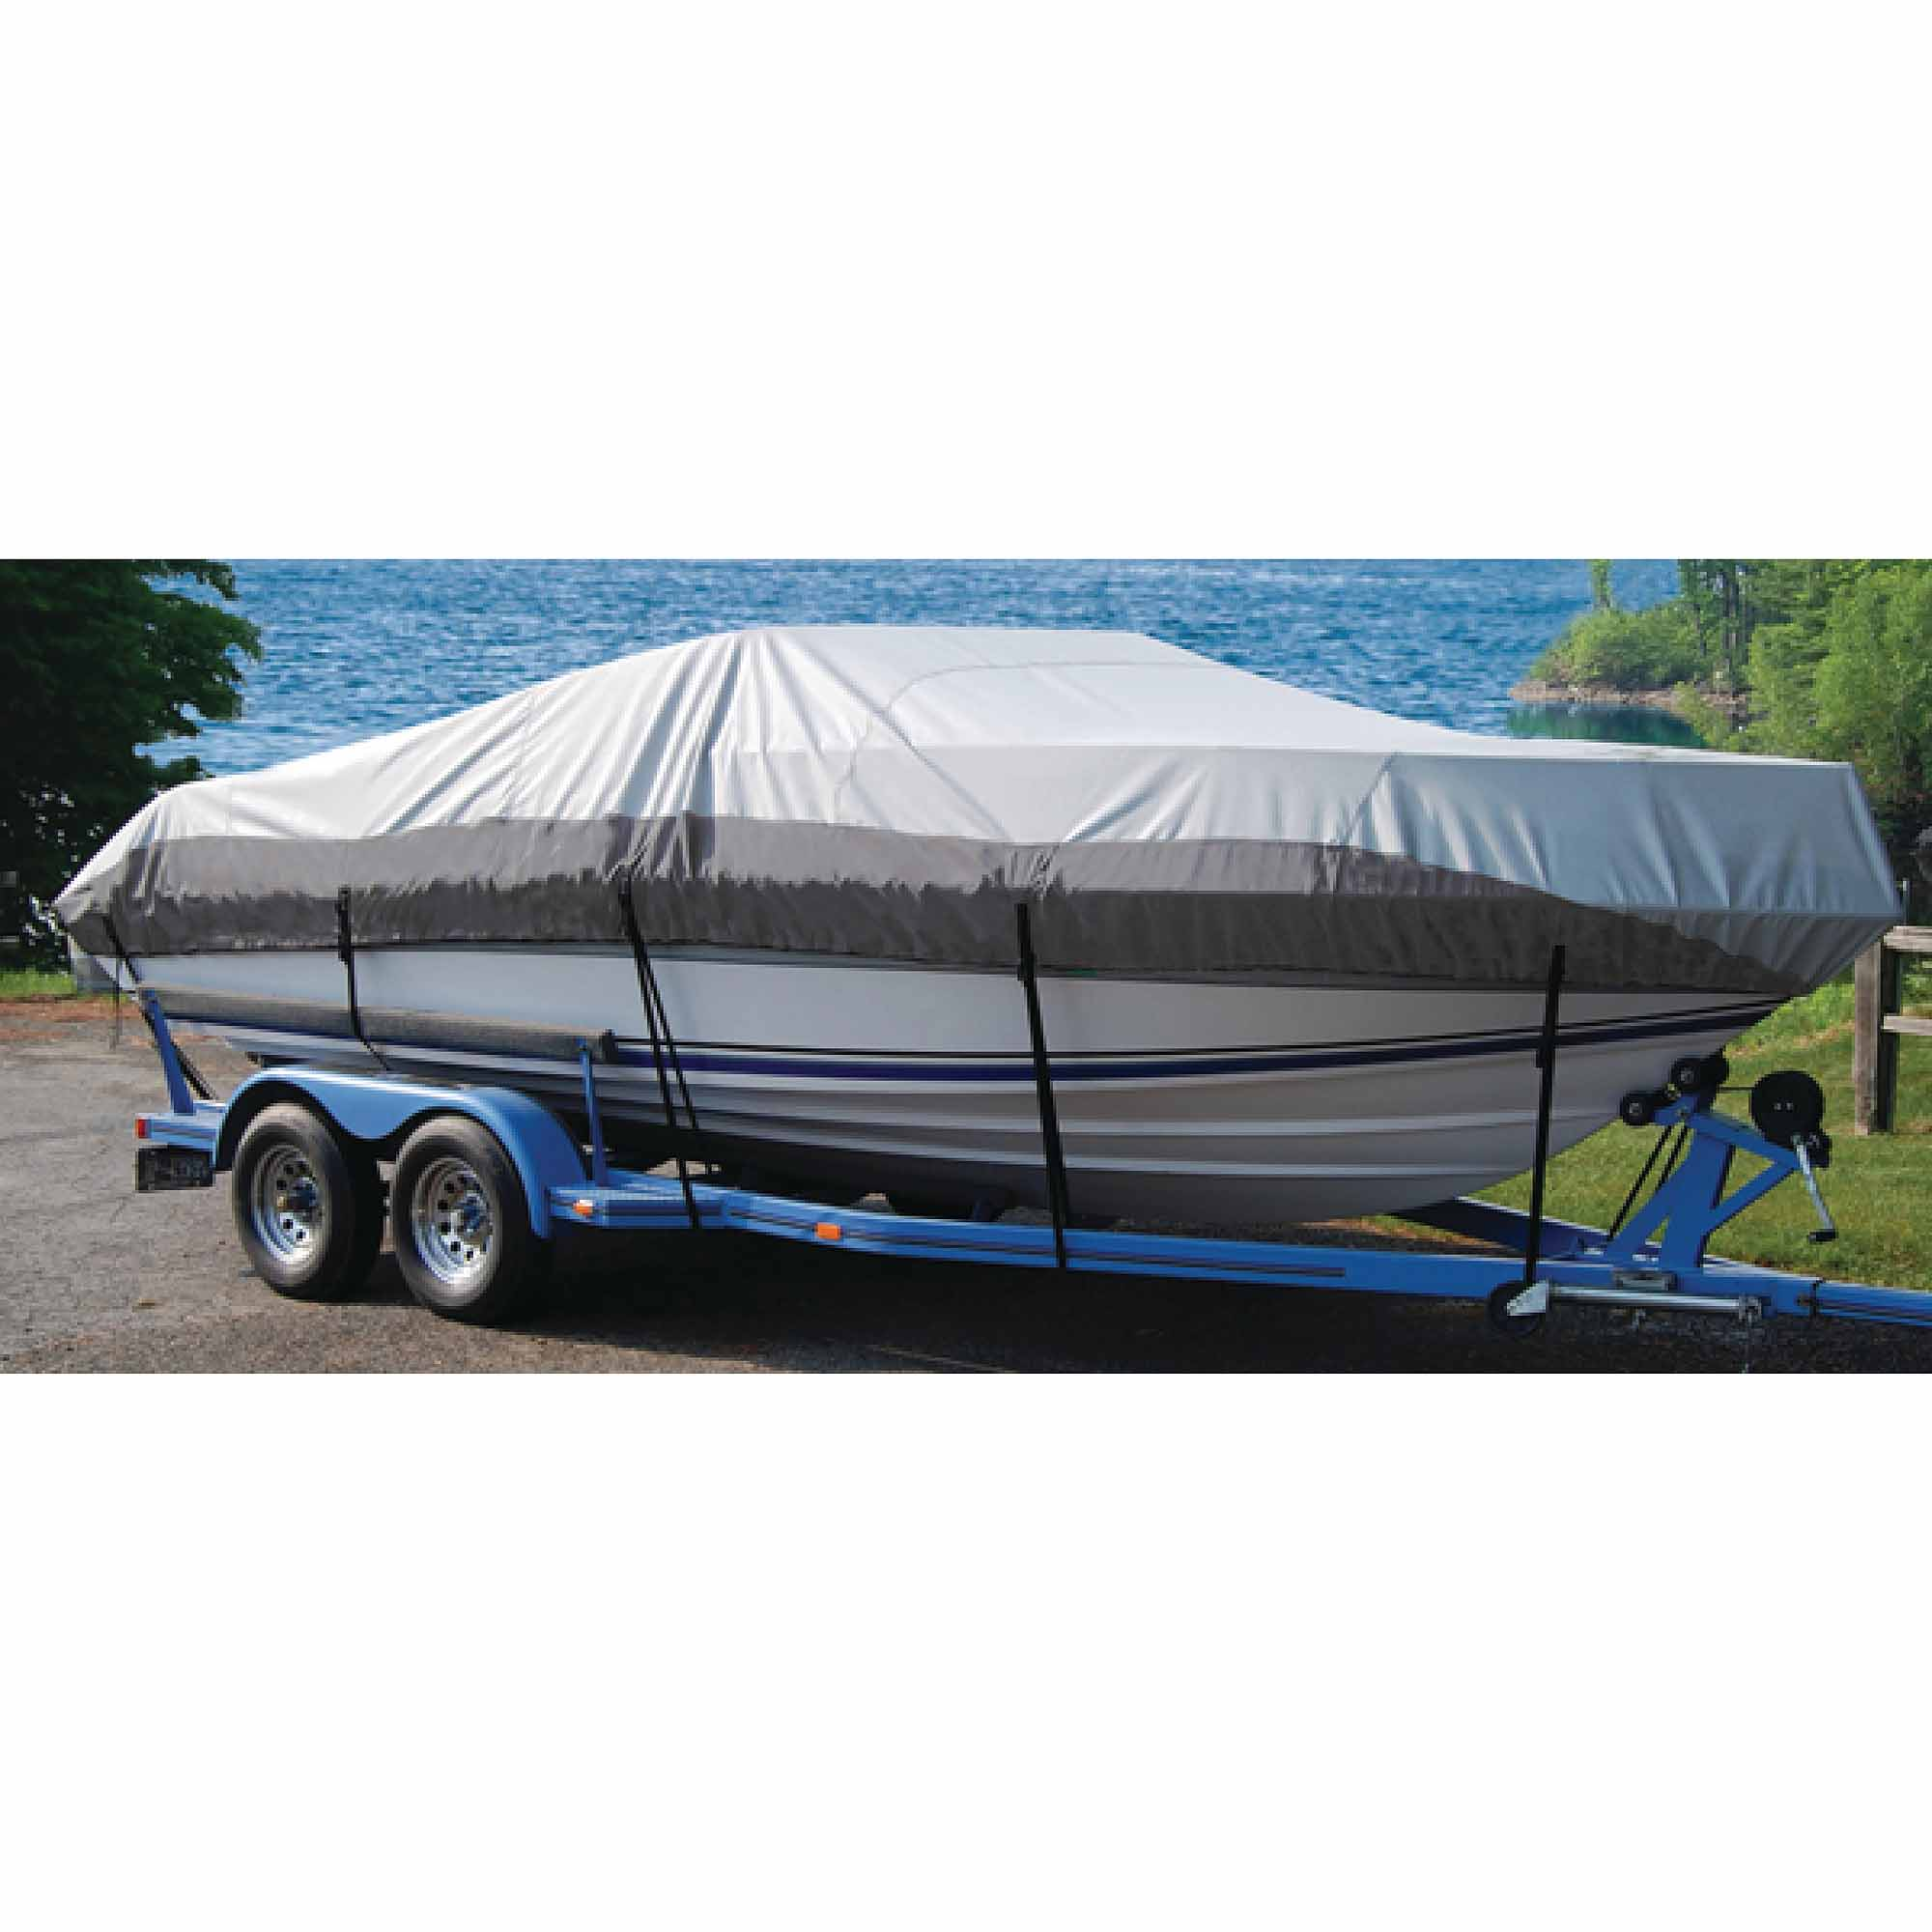 """Taylor Heavy Duty Polyester 2-Tone Color Fabric BoatGuard Eclipse Boat Cover with Storage Bag, Tie-Down Straps and Support Pole, Fits 21' to 23' V-Hull Runabout Bow Rider, Up to 102"""" Beam"""